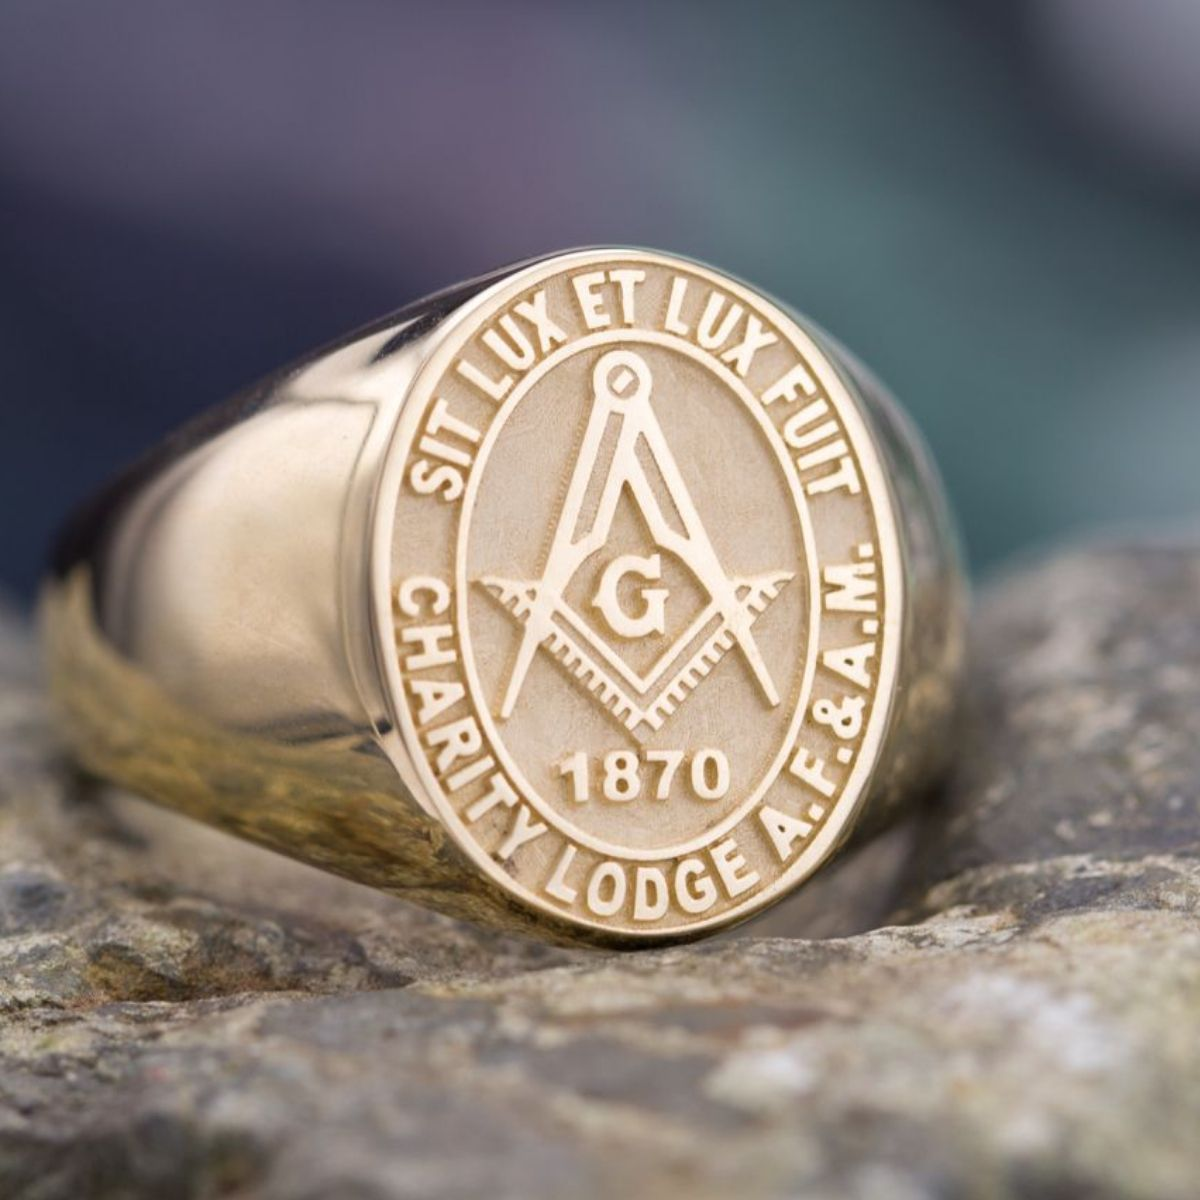 weekly rings collectors ring stories antique freemason